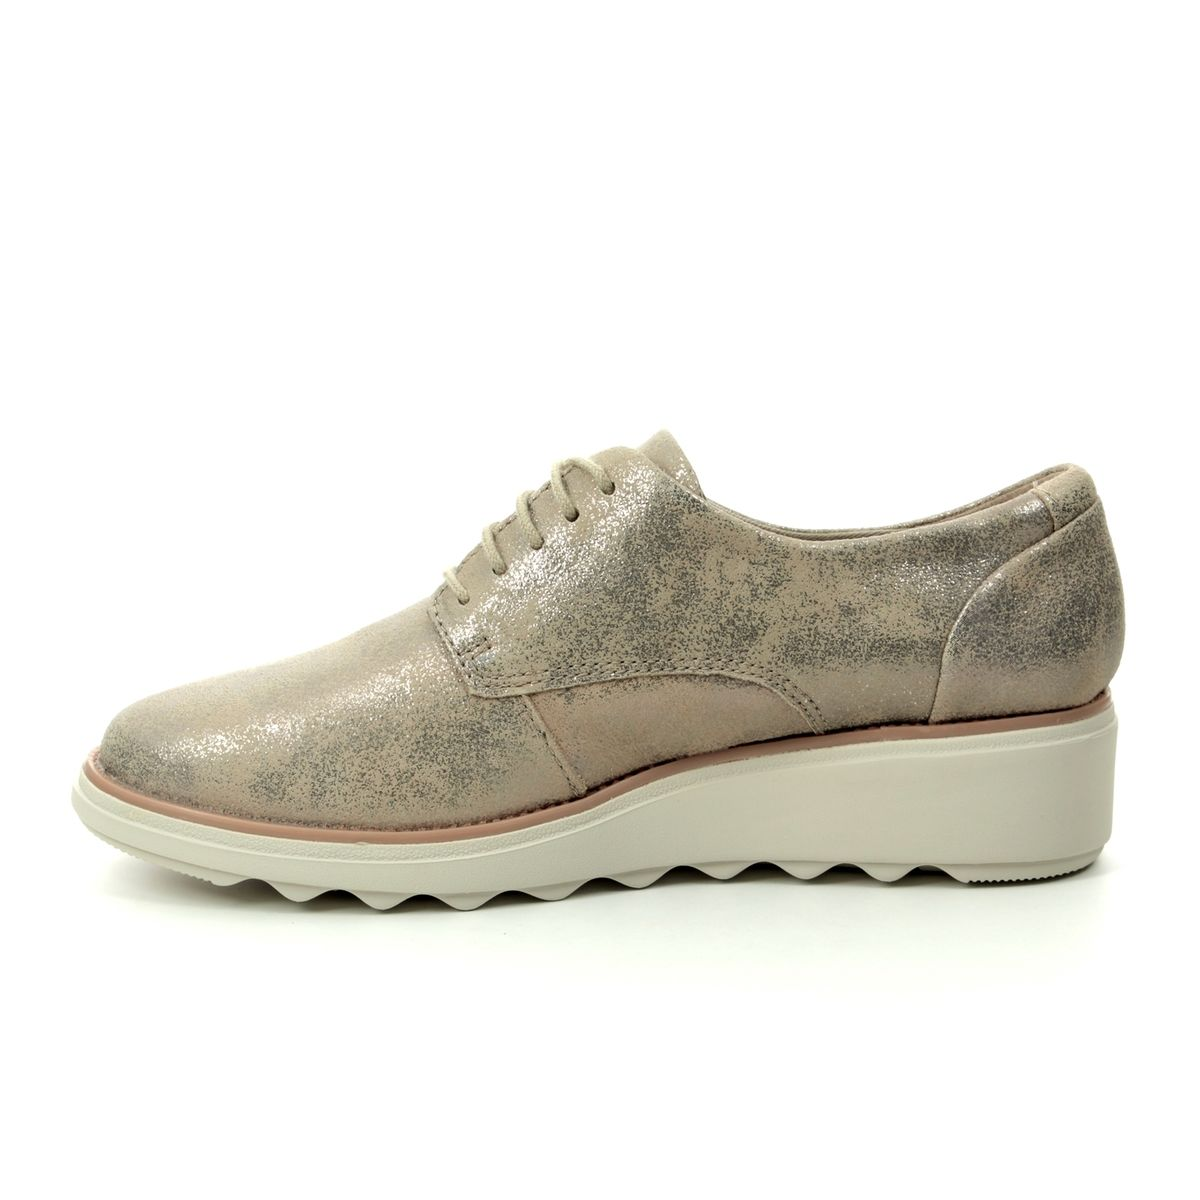 64f414ff33e3 Clarks Wedge Shoes - Pewter suede - 400714D SHARON CRYSTAL